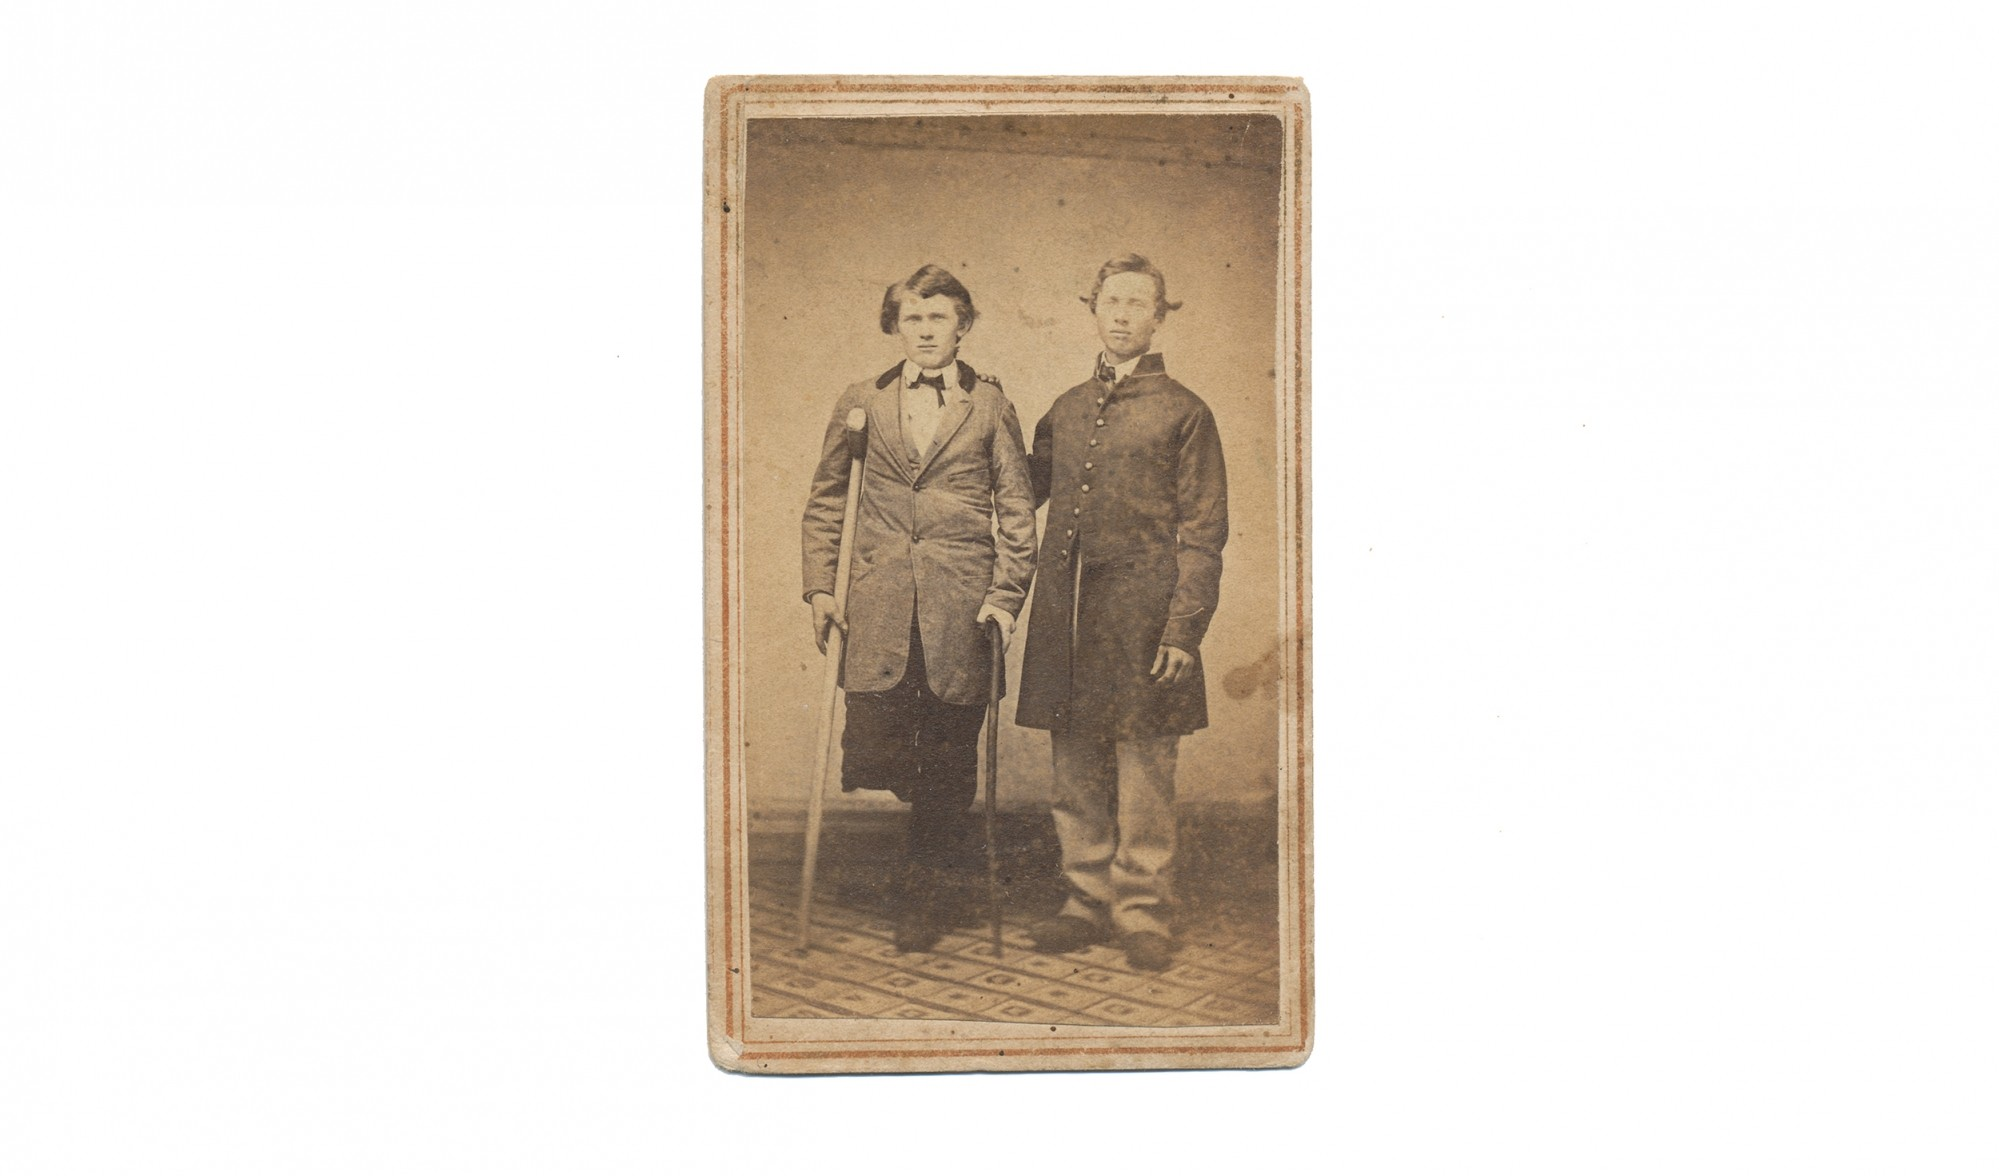 CDV SOLDIER WITH AMPUTEE FRIEND OR RELATIVE